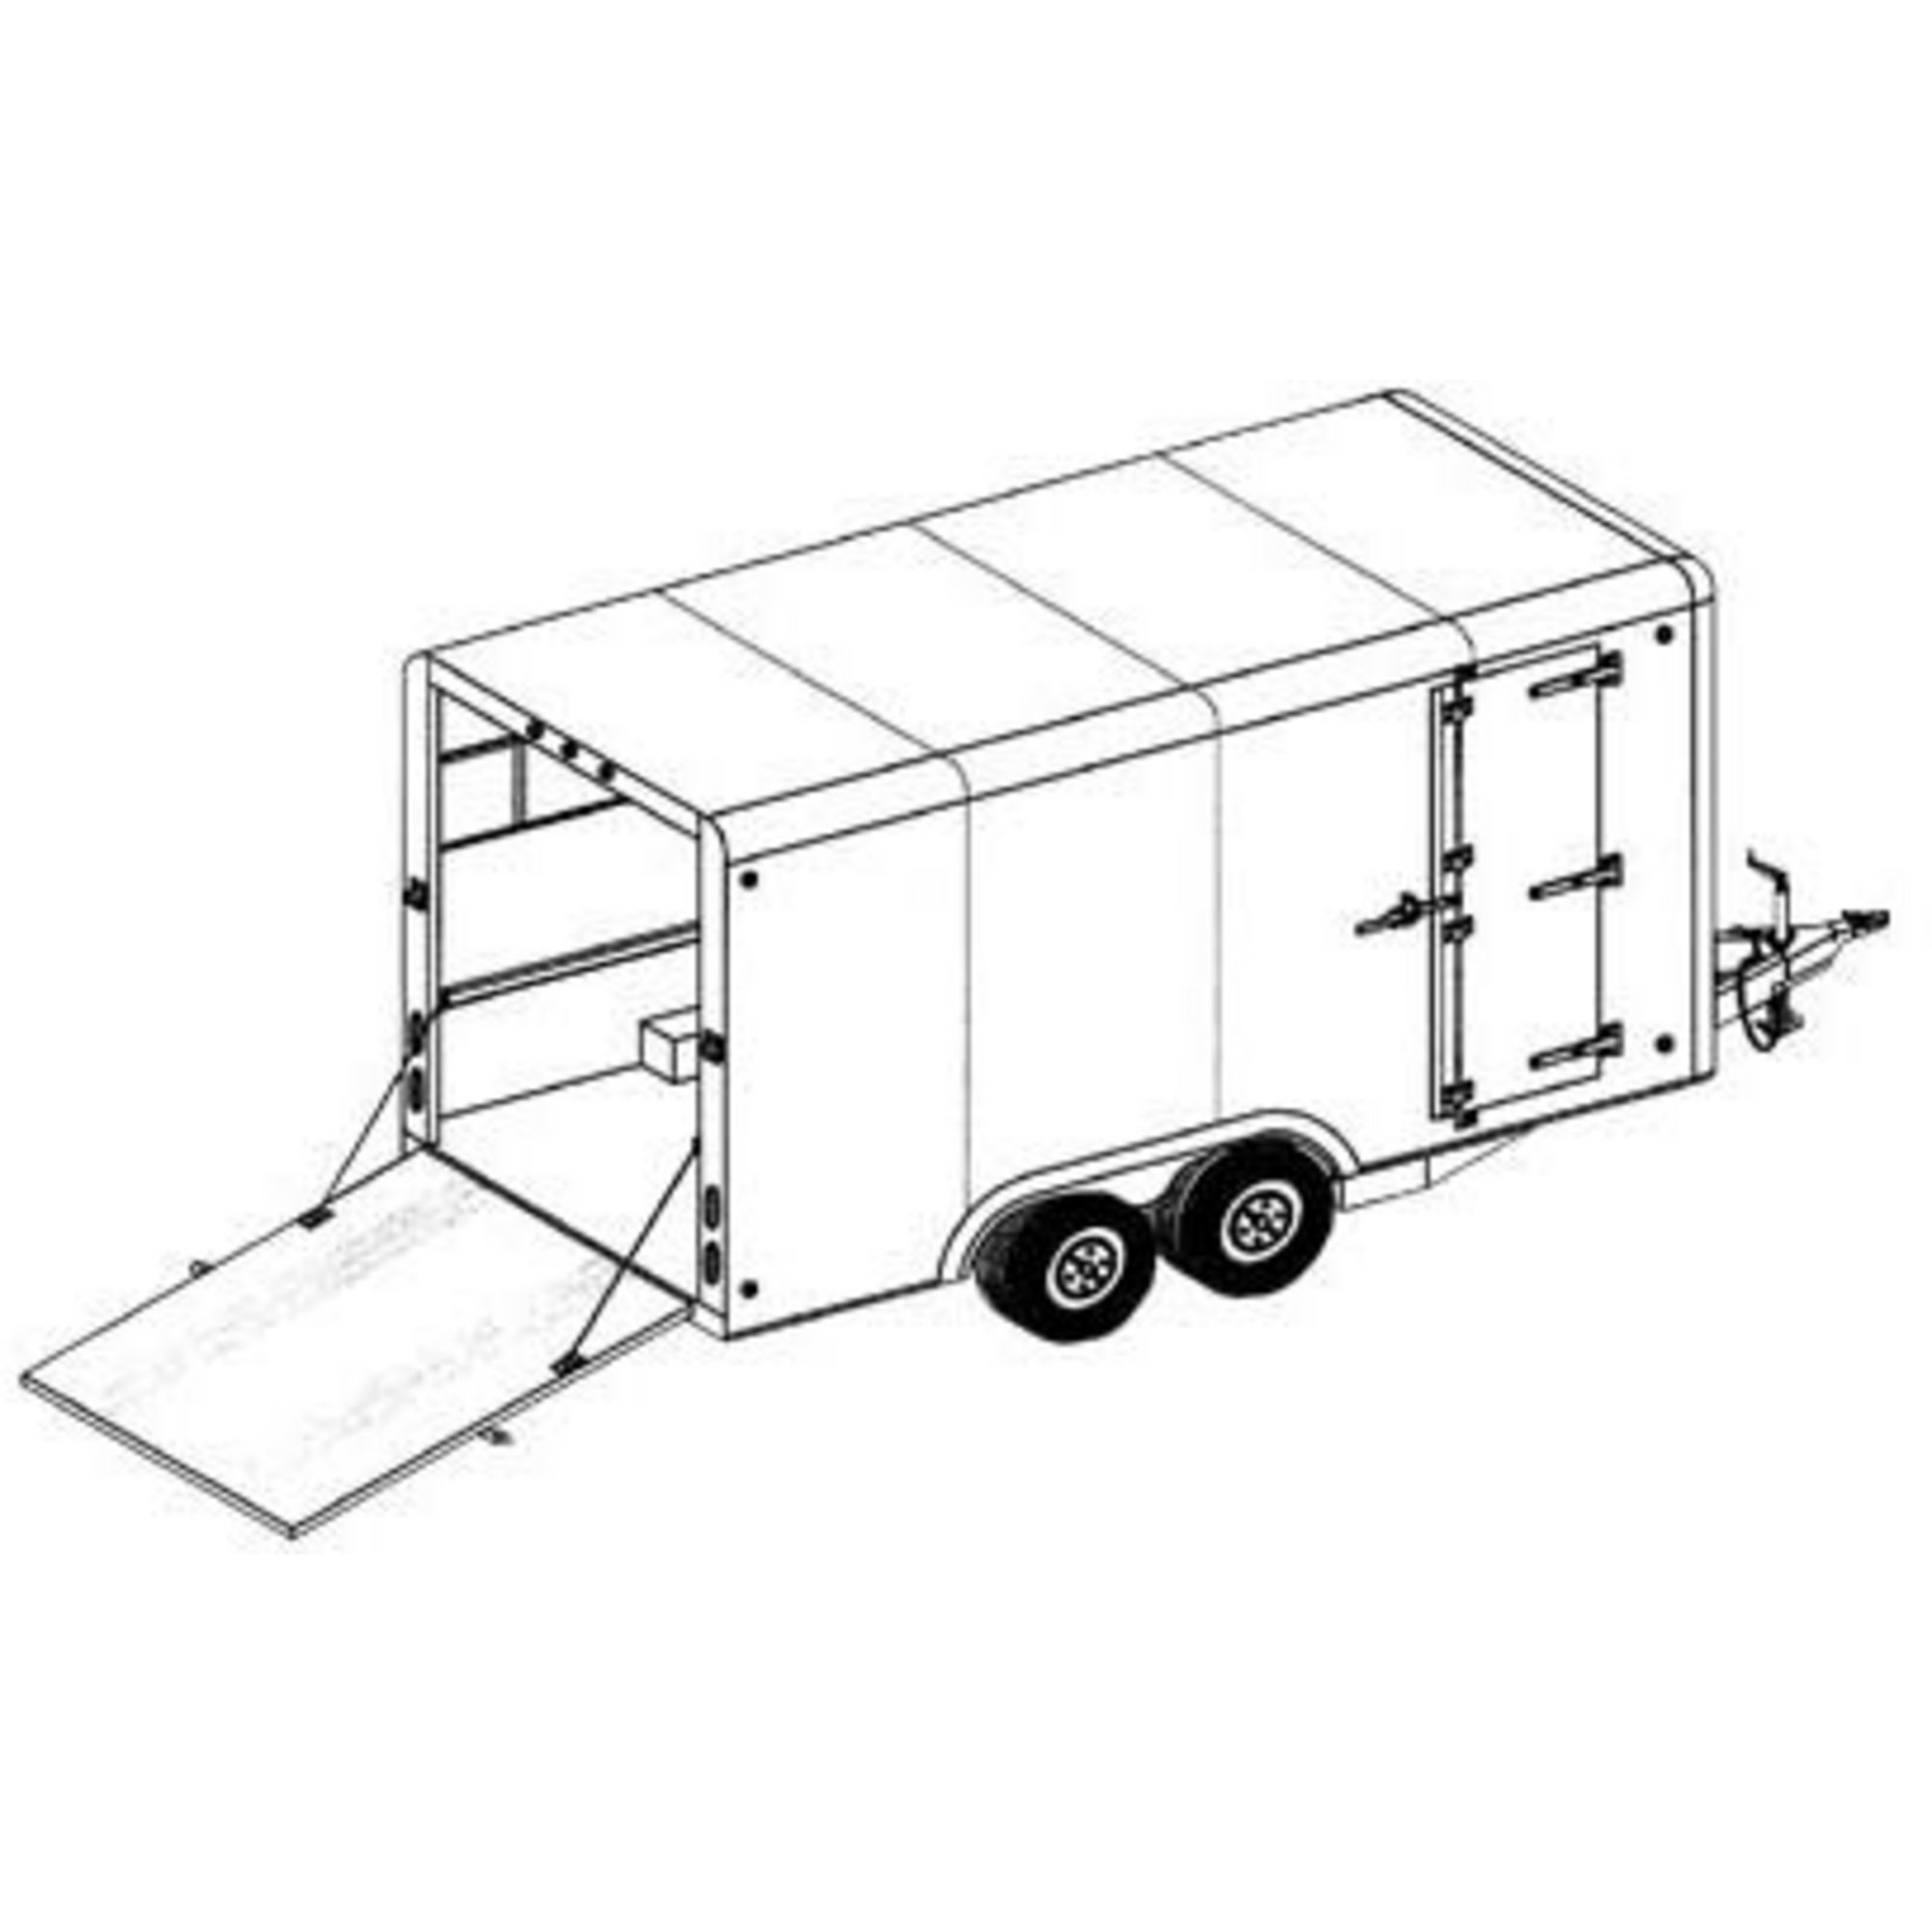 Cargo Drawing At Getdrawings